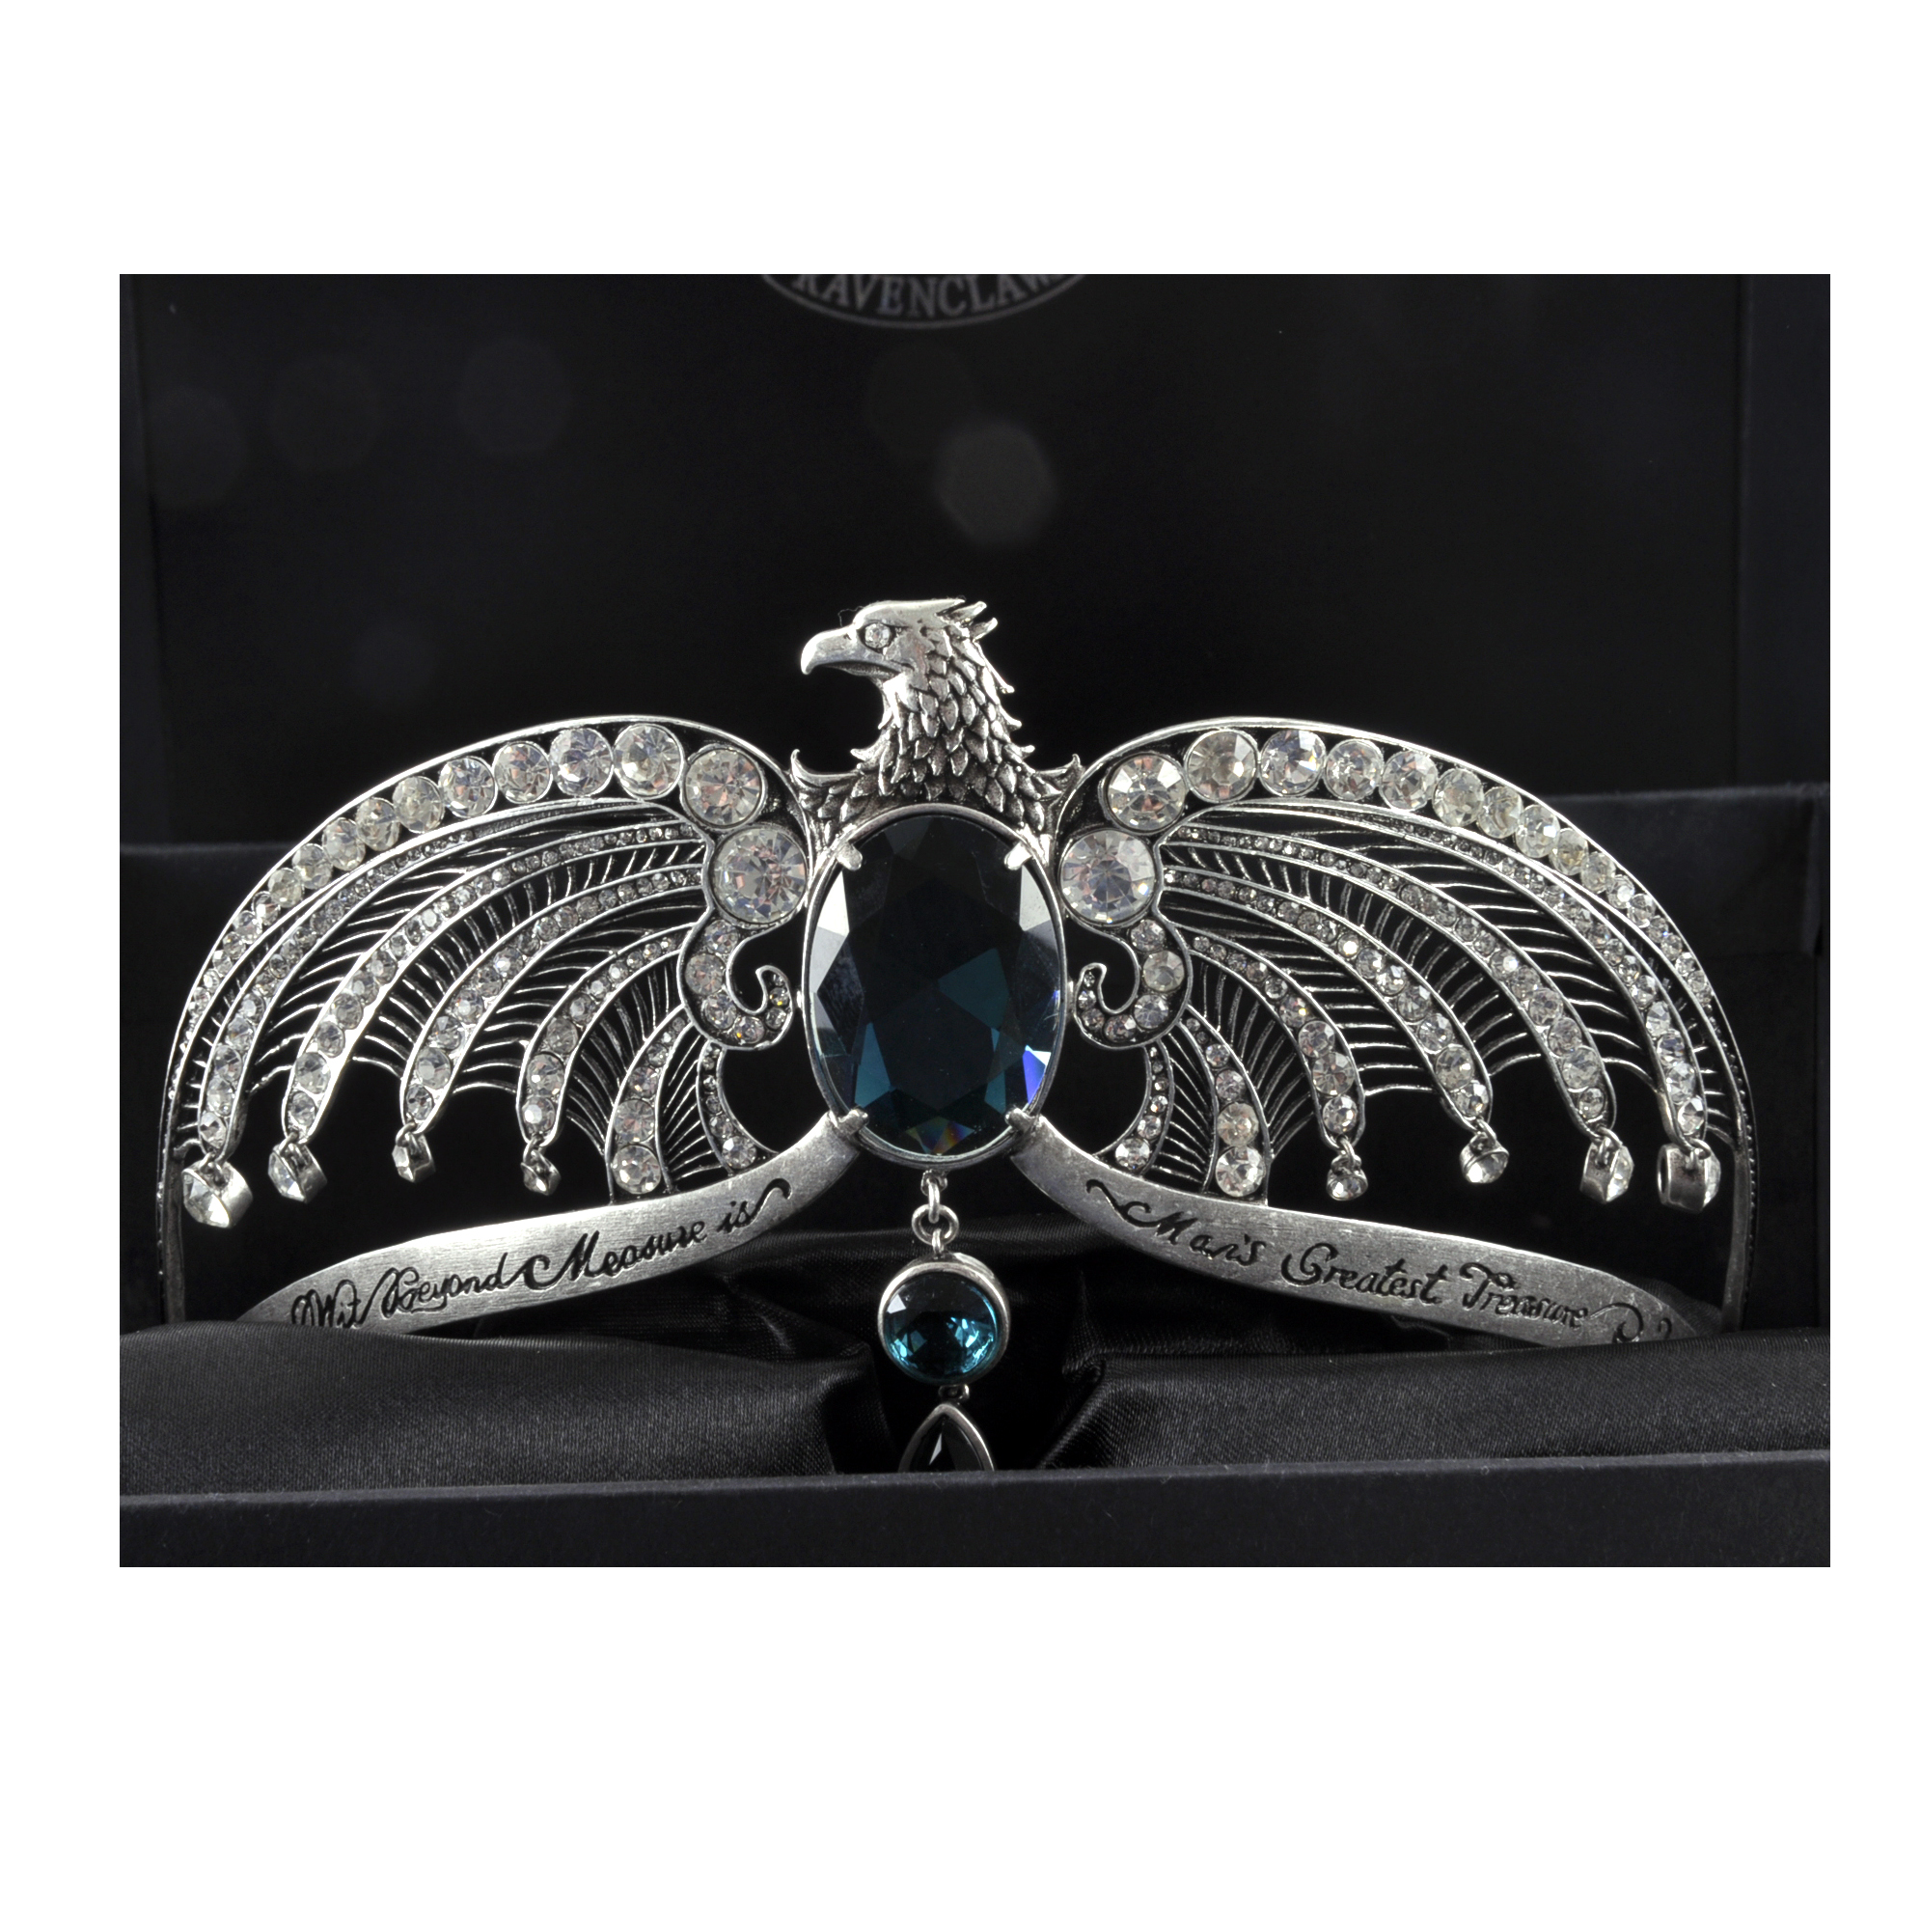 ravenclaw diadem stunning noble collection harry potter tiara